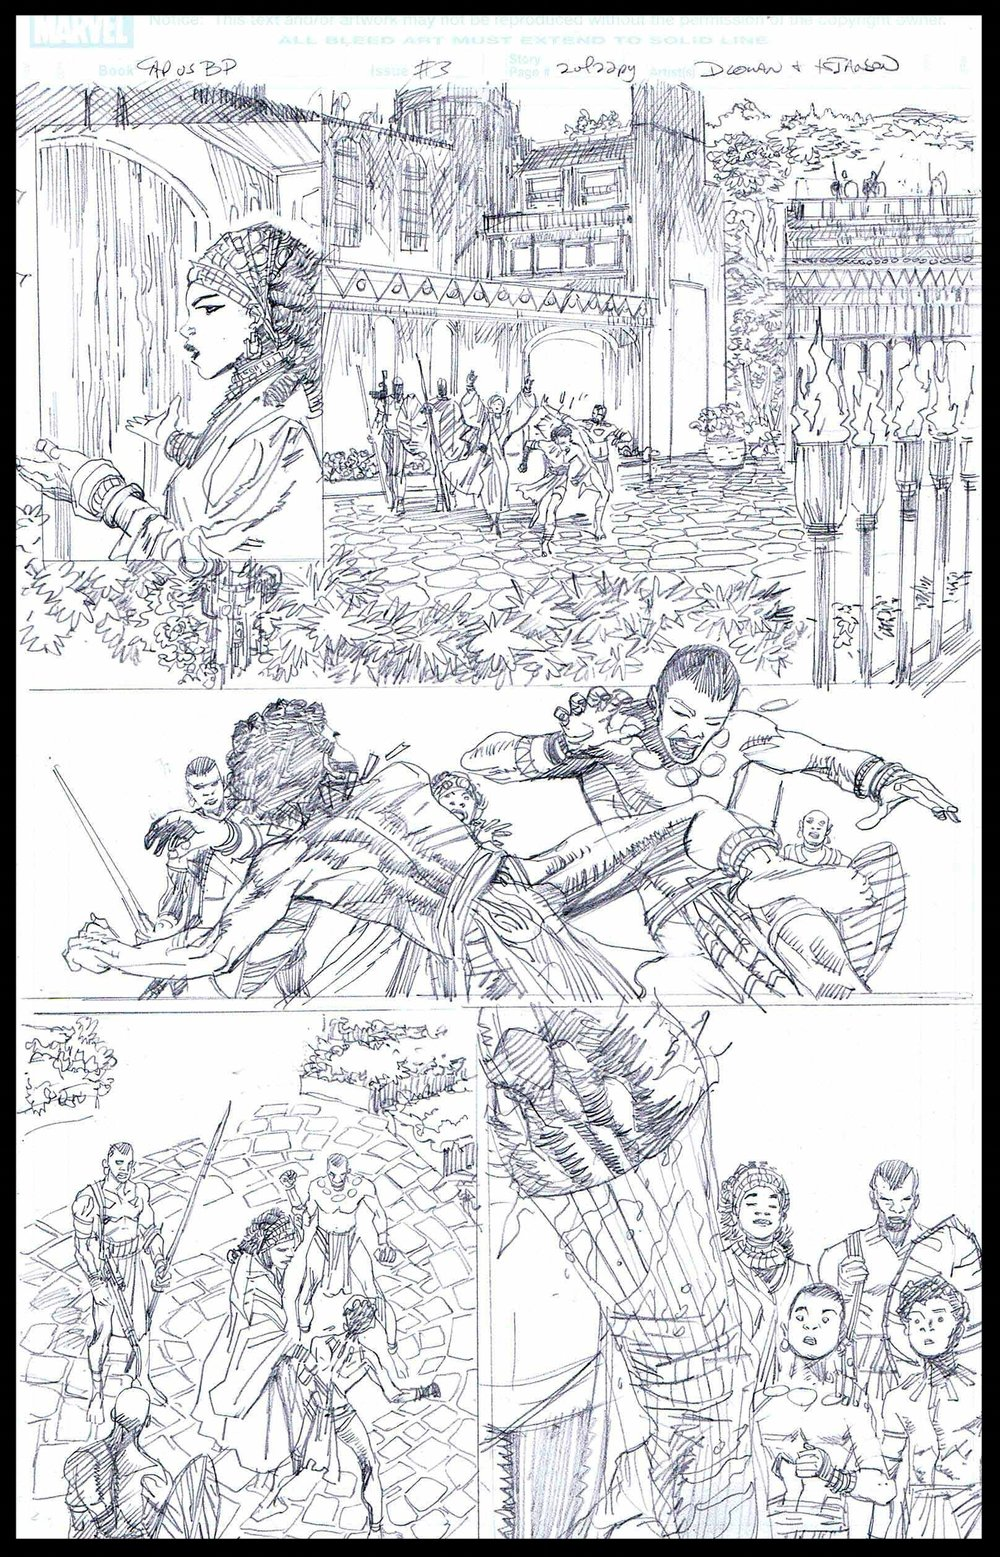 Flags of Our Fathers #3 - Page 2 - Pencils